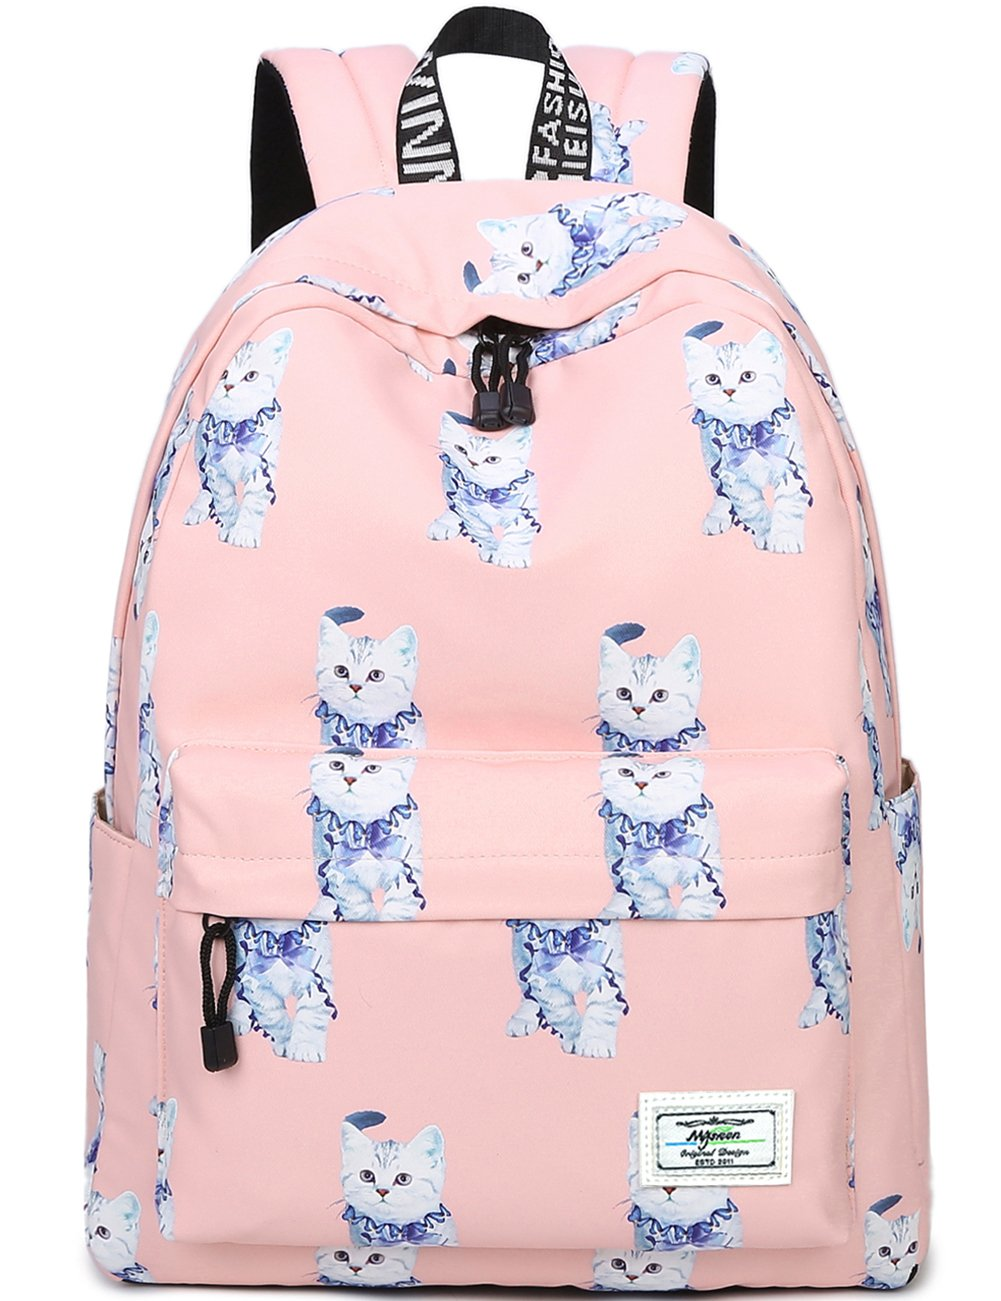 Bookbags for Teens, Cute Animal Cat/Kitty Laptop Backpack School Bags Travel Daypack Handbag by Myrgeen(Pink)